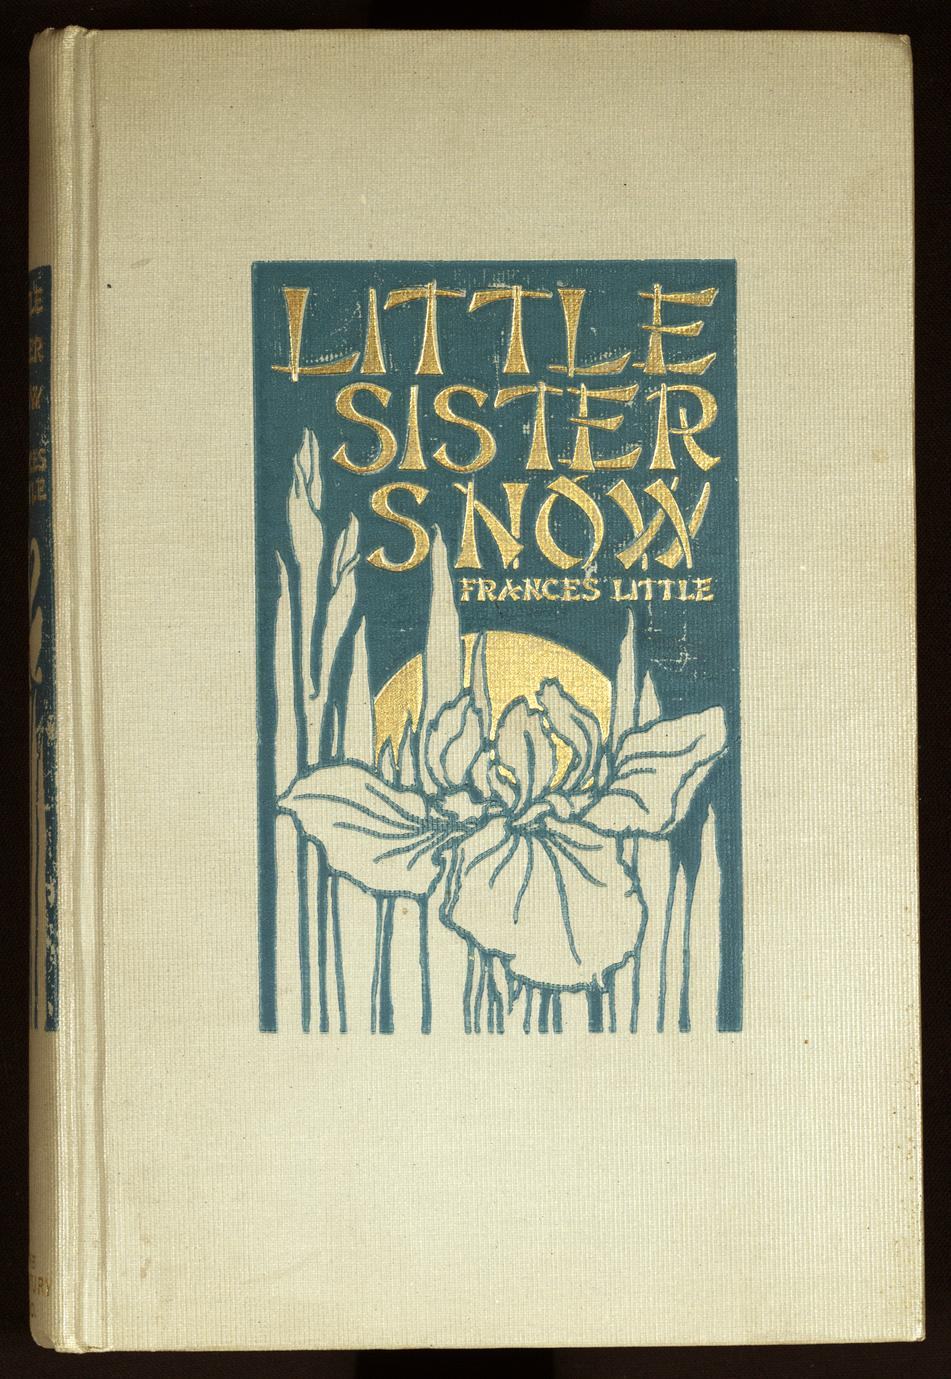 Little Sister Snow (1 of 2)